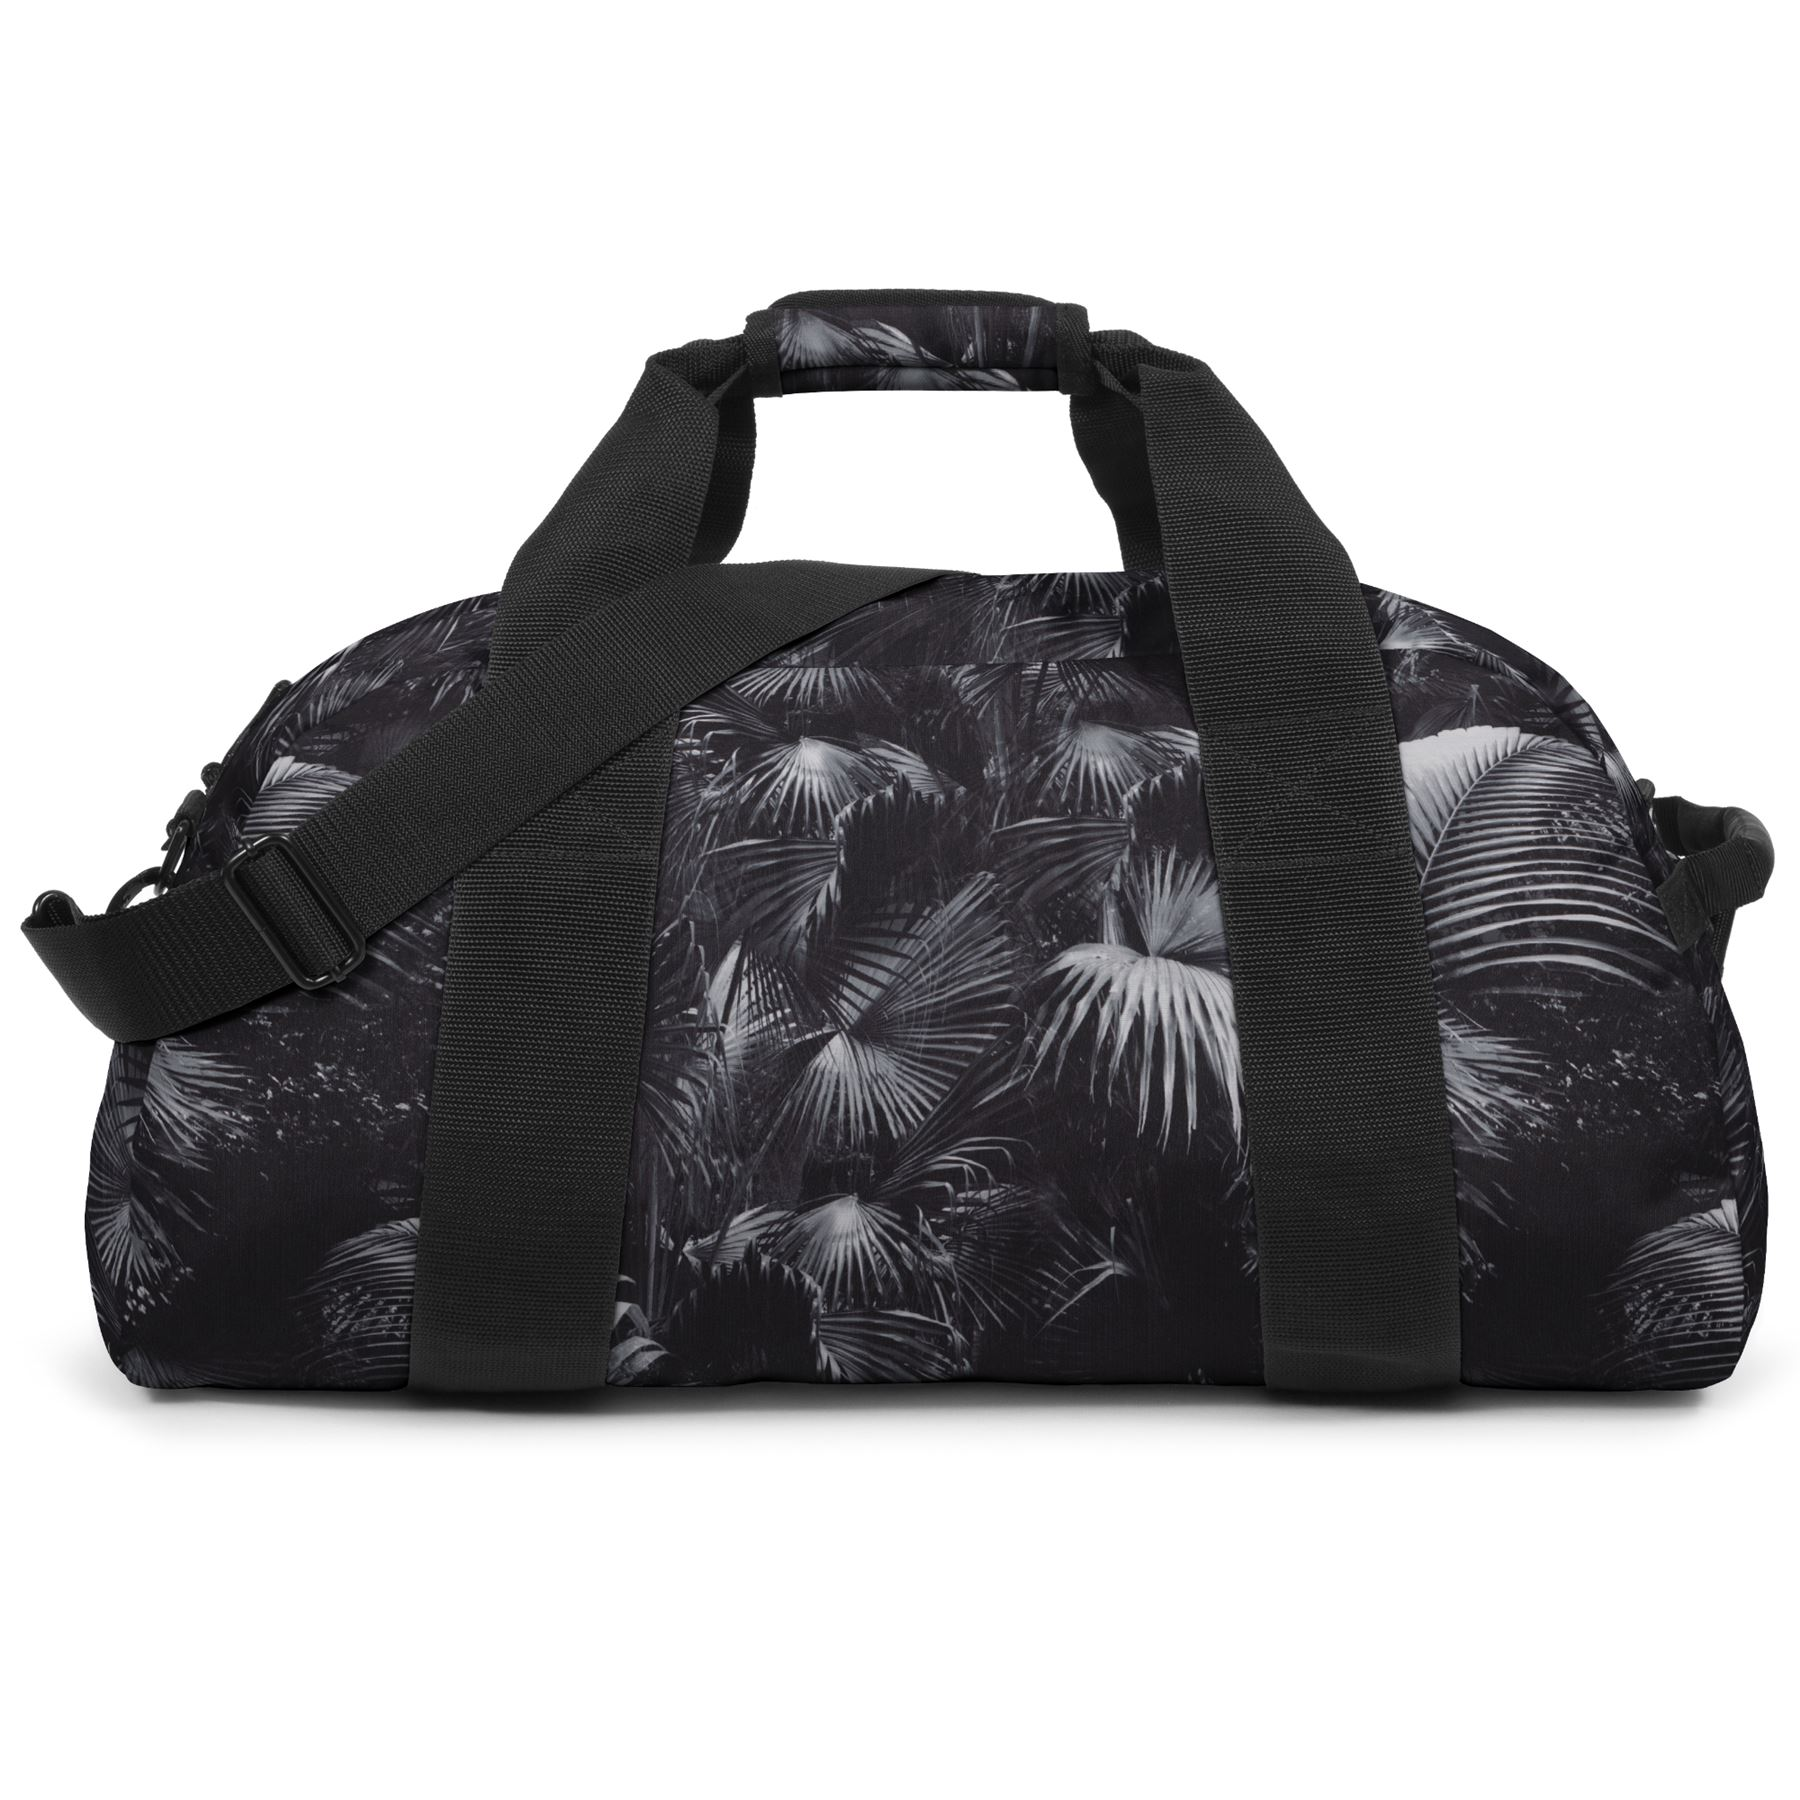 Eastpak Station Duffle / Holdall Bag ideal for Weekend ...